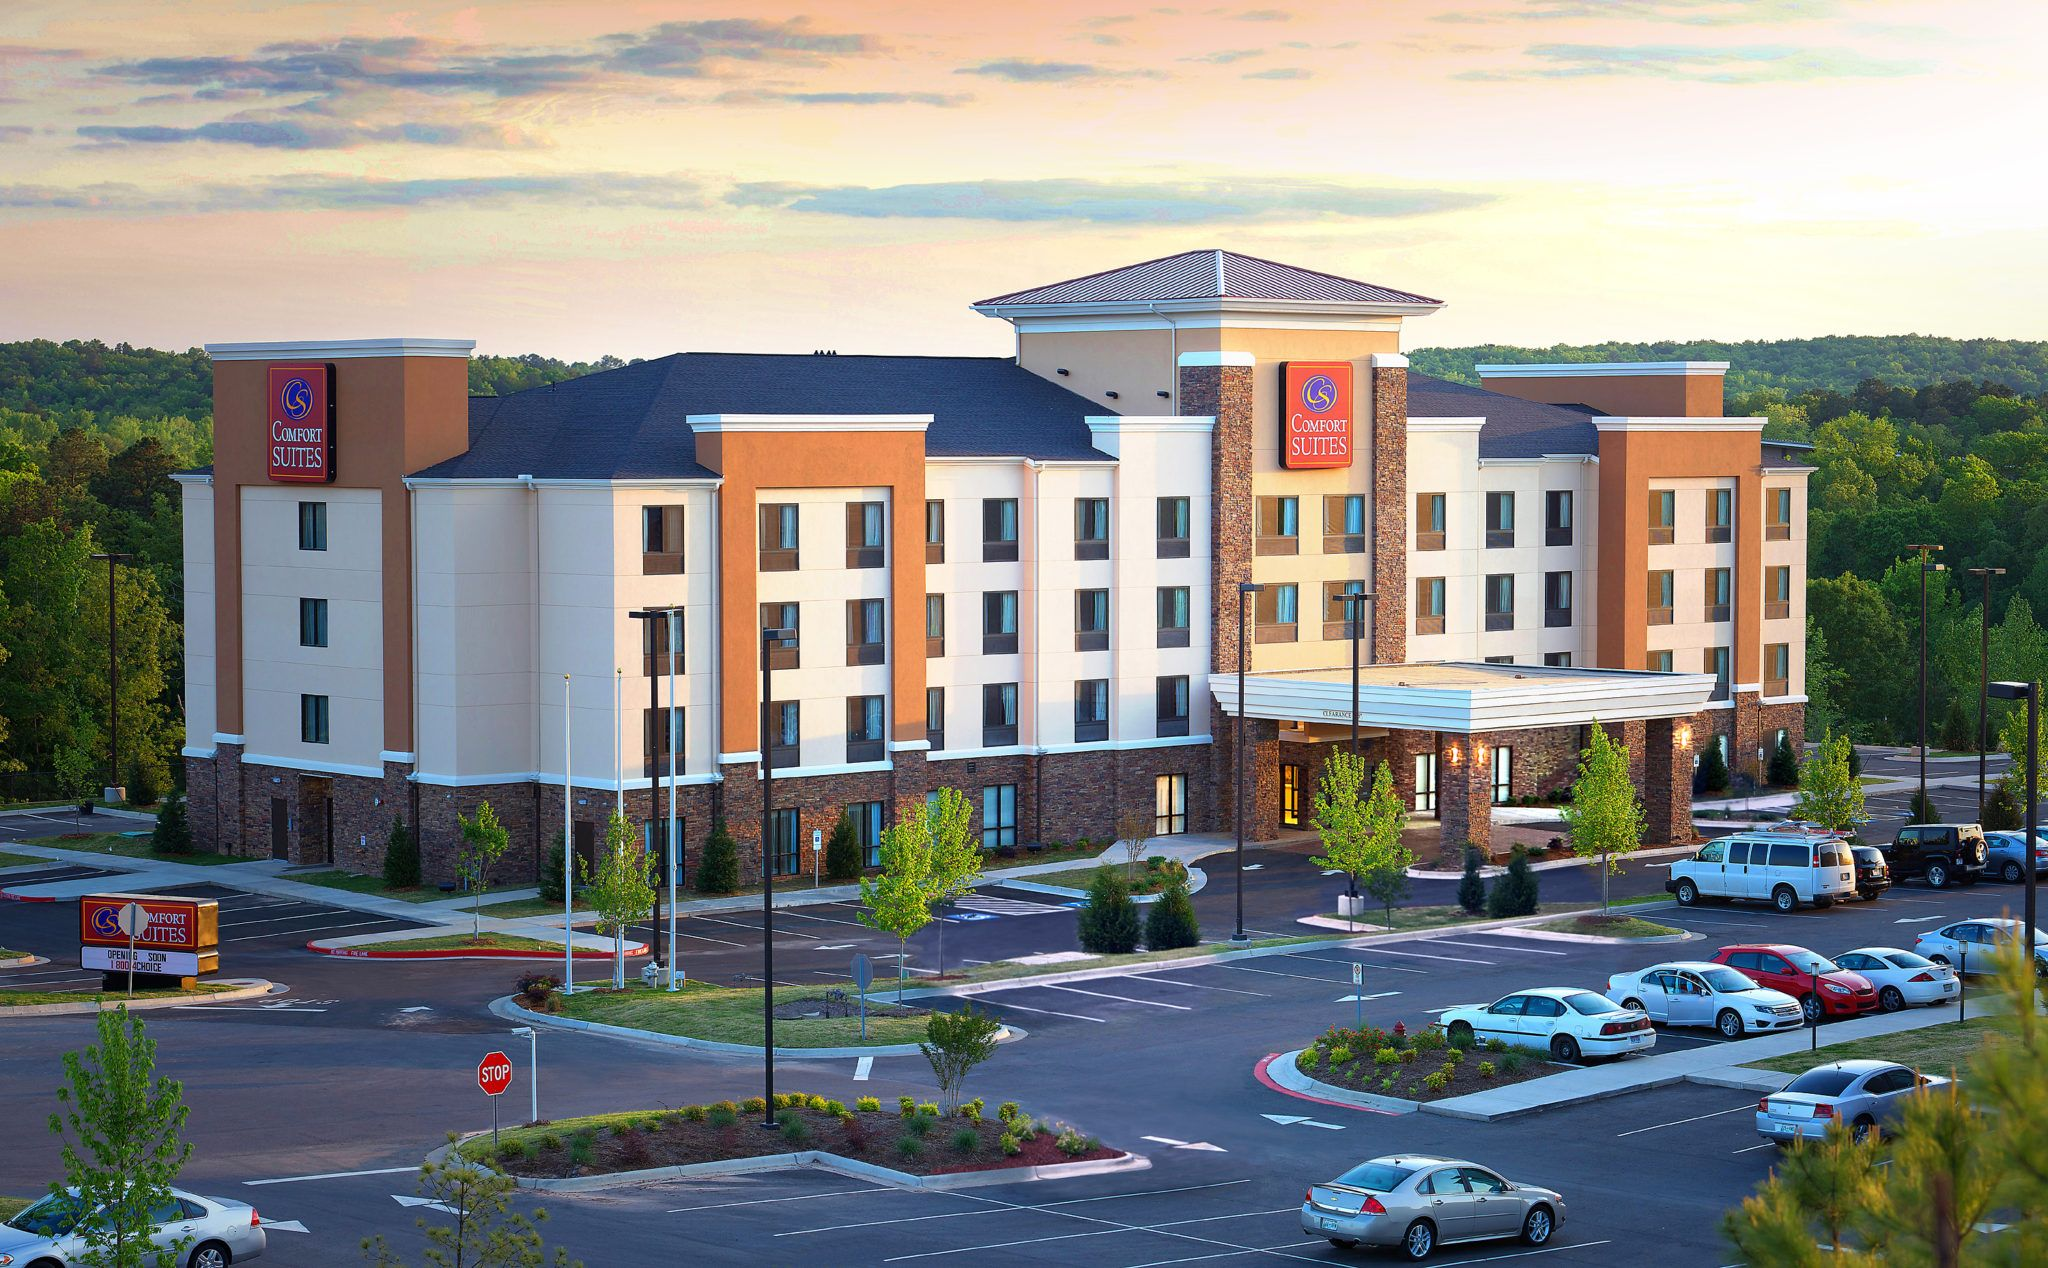 Pin By Devontierney On City Model In 2020 Hotel Exterior Comfort Inn And Suites City Model